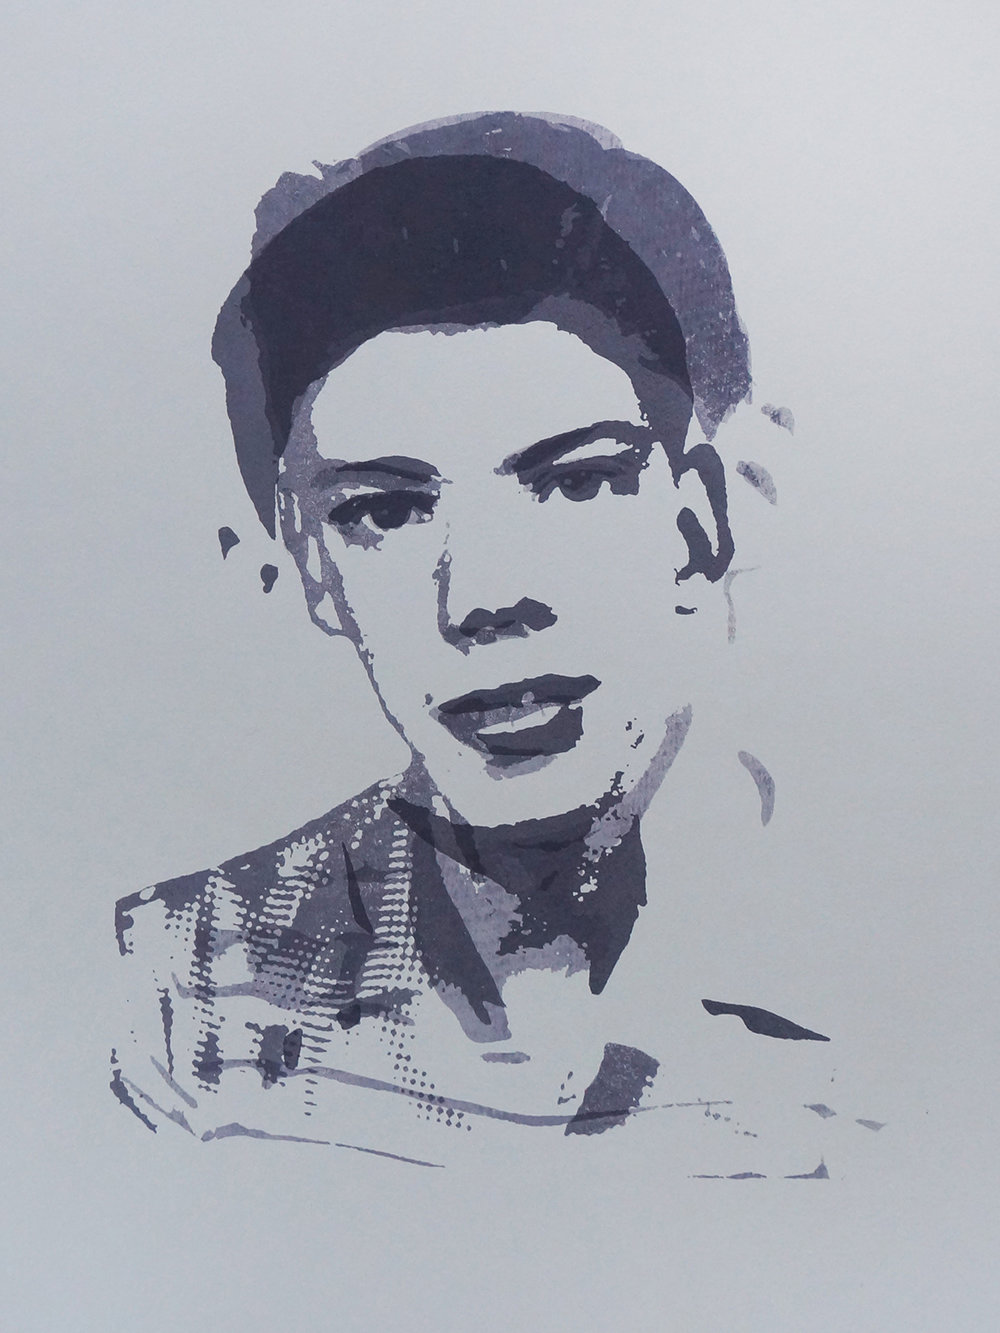 Ape_Bleakney_'Jack (Pap)' School Days Series (21), Screen Print, 11''x15'', 2018.jpg